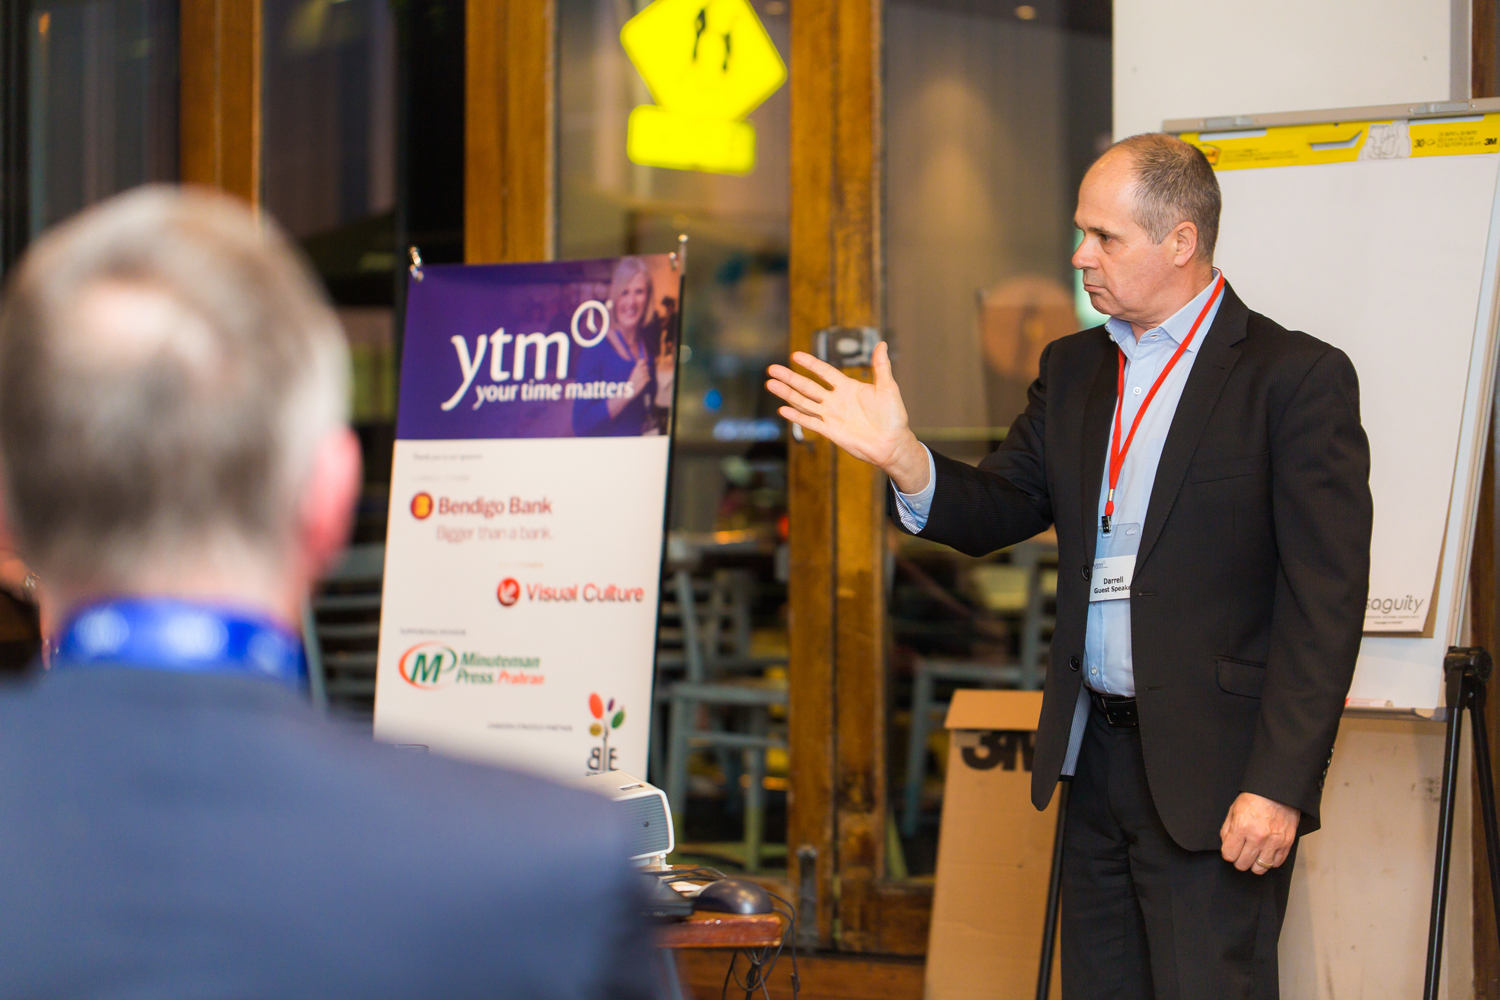 Why would you collaborate with YTM? - We host professionally run networking events for business owners and professionals that offer guests real connection, learning and business development opportunities. These are not card swap events where people leave feeling empty. Our members are proactive, supportive and engaged, and have a genuine desire to succeed individually as well as a group.